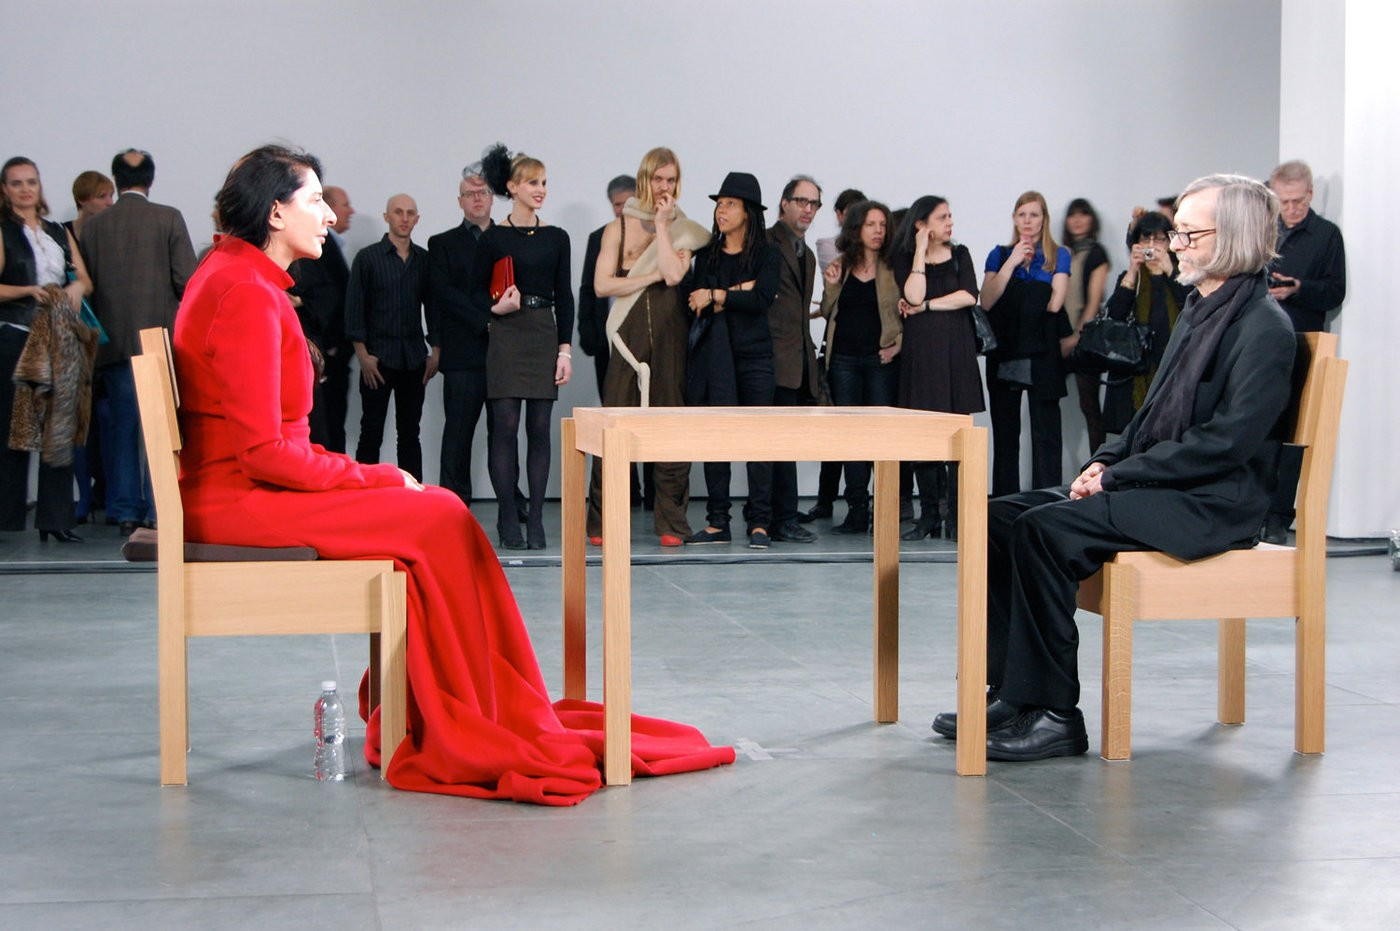 Medium marina abramovic 4